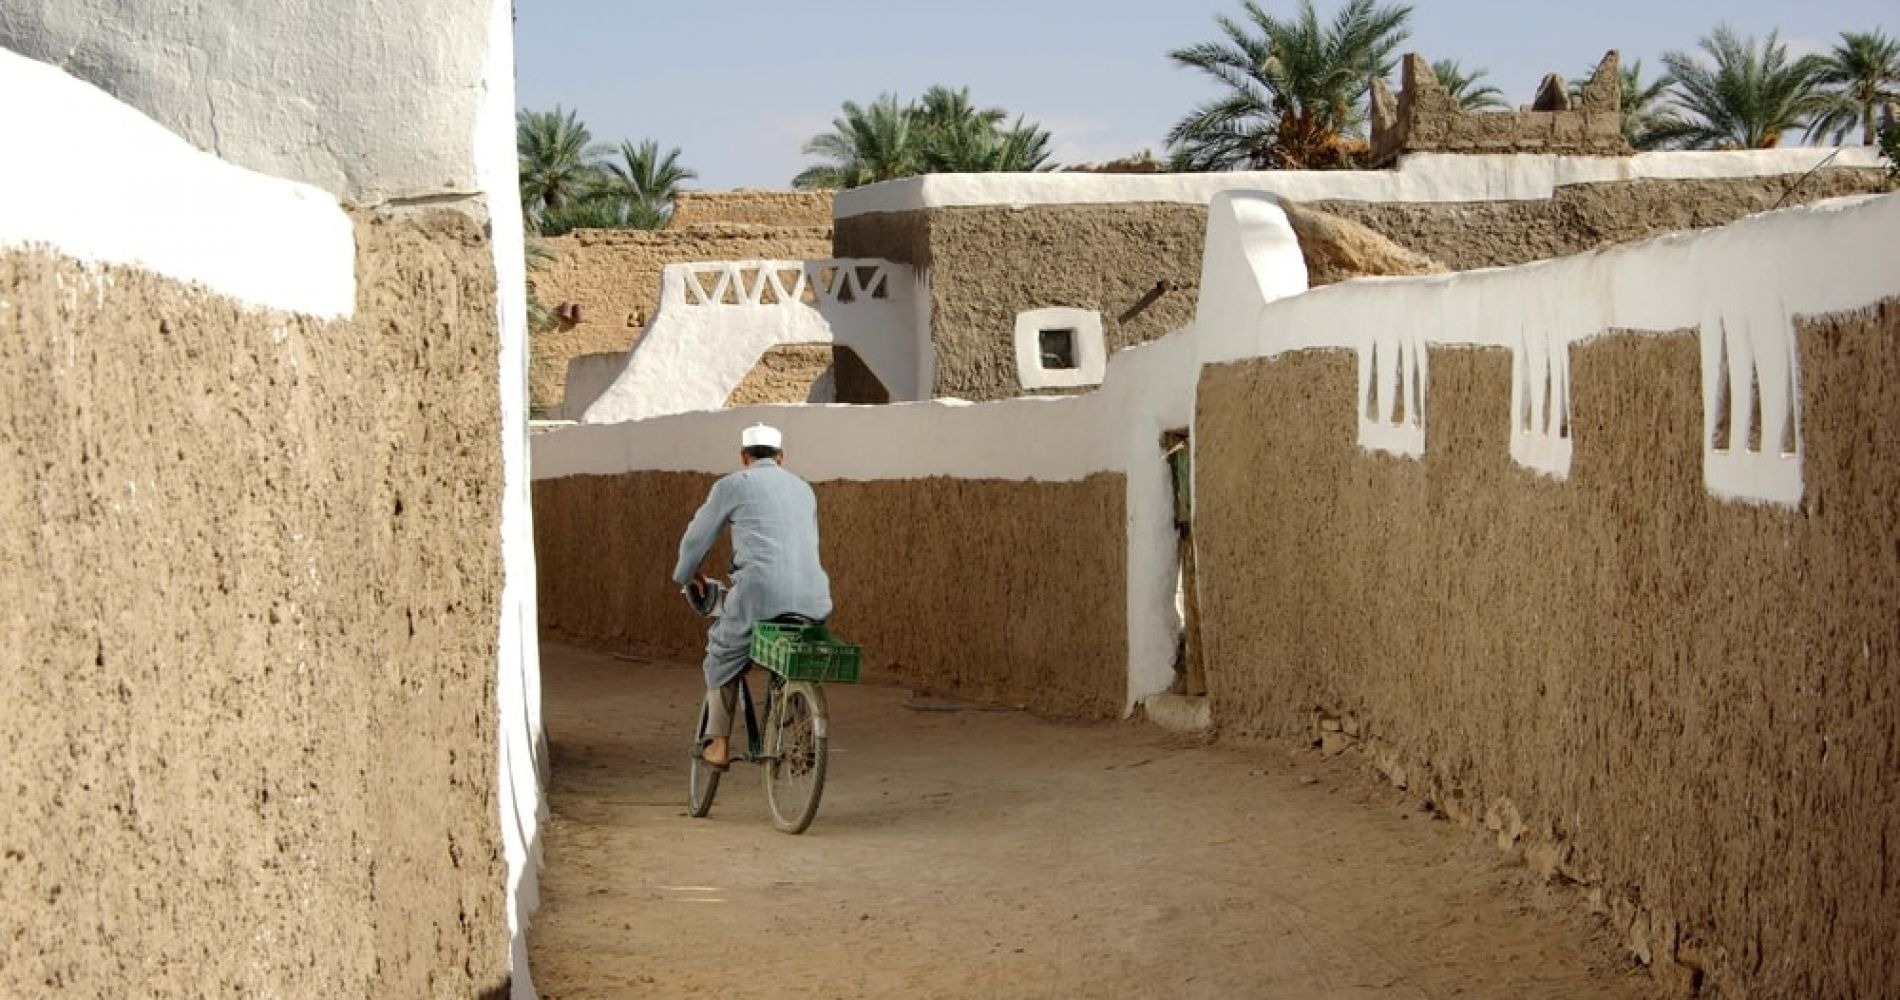 Discover Ghadames - The Pearl of the Desert